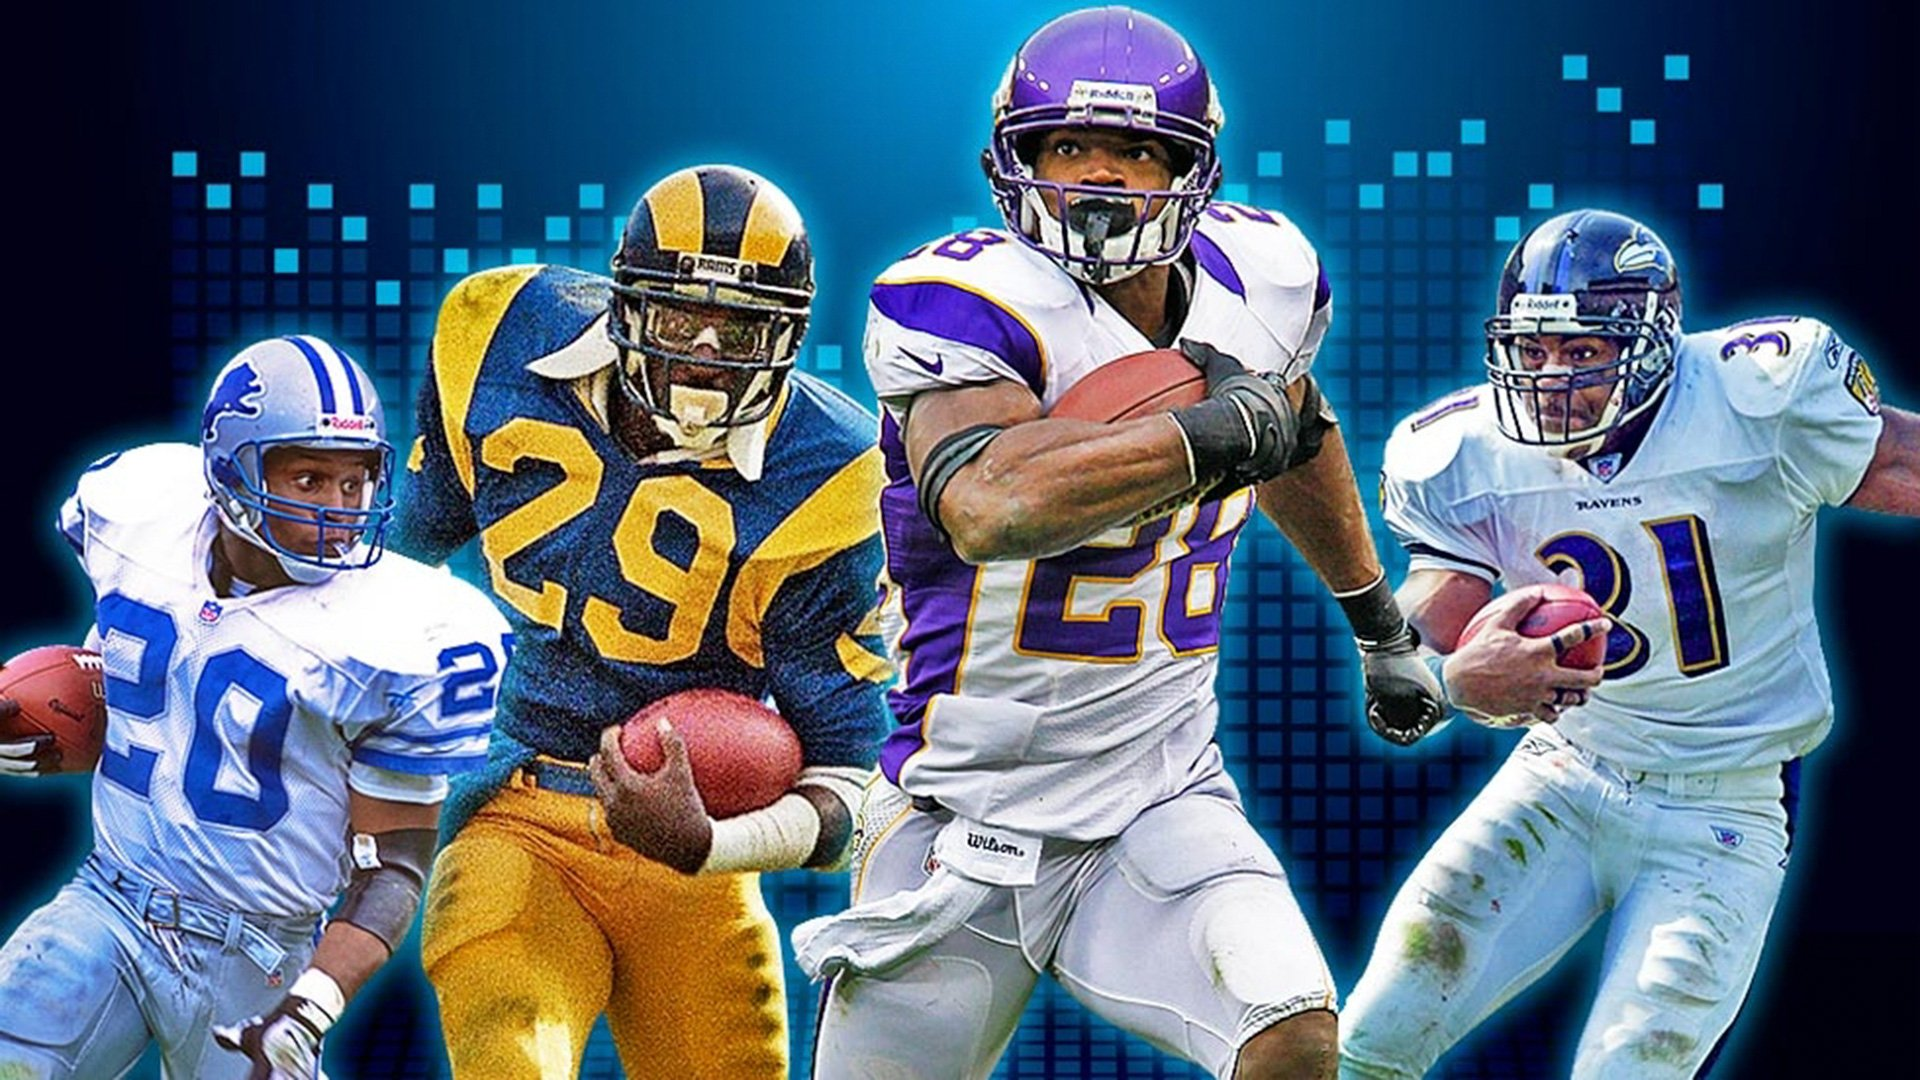 NFL football wallpaper 1920x1080 824005 WallpaperUP 1920x1080